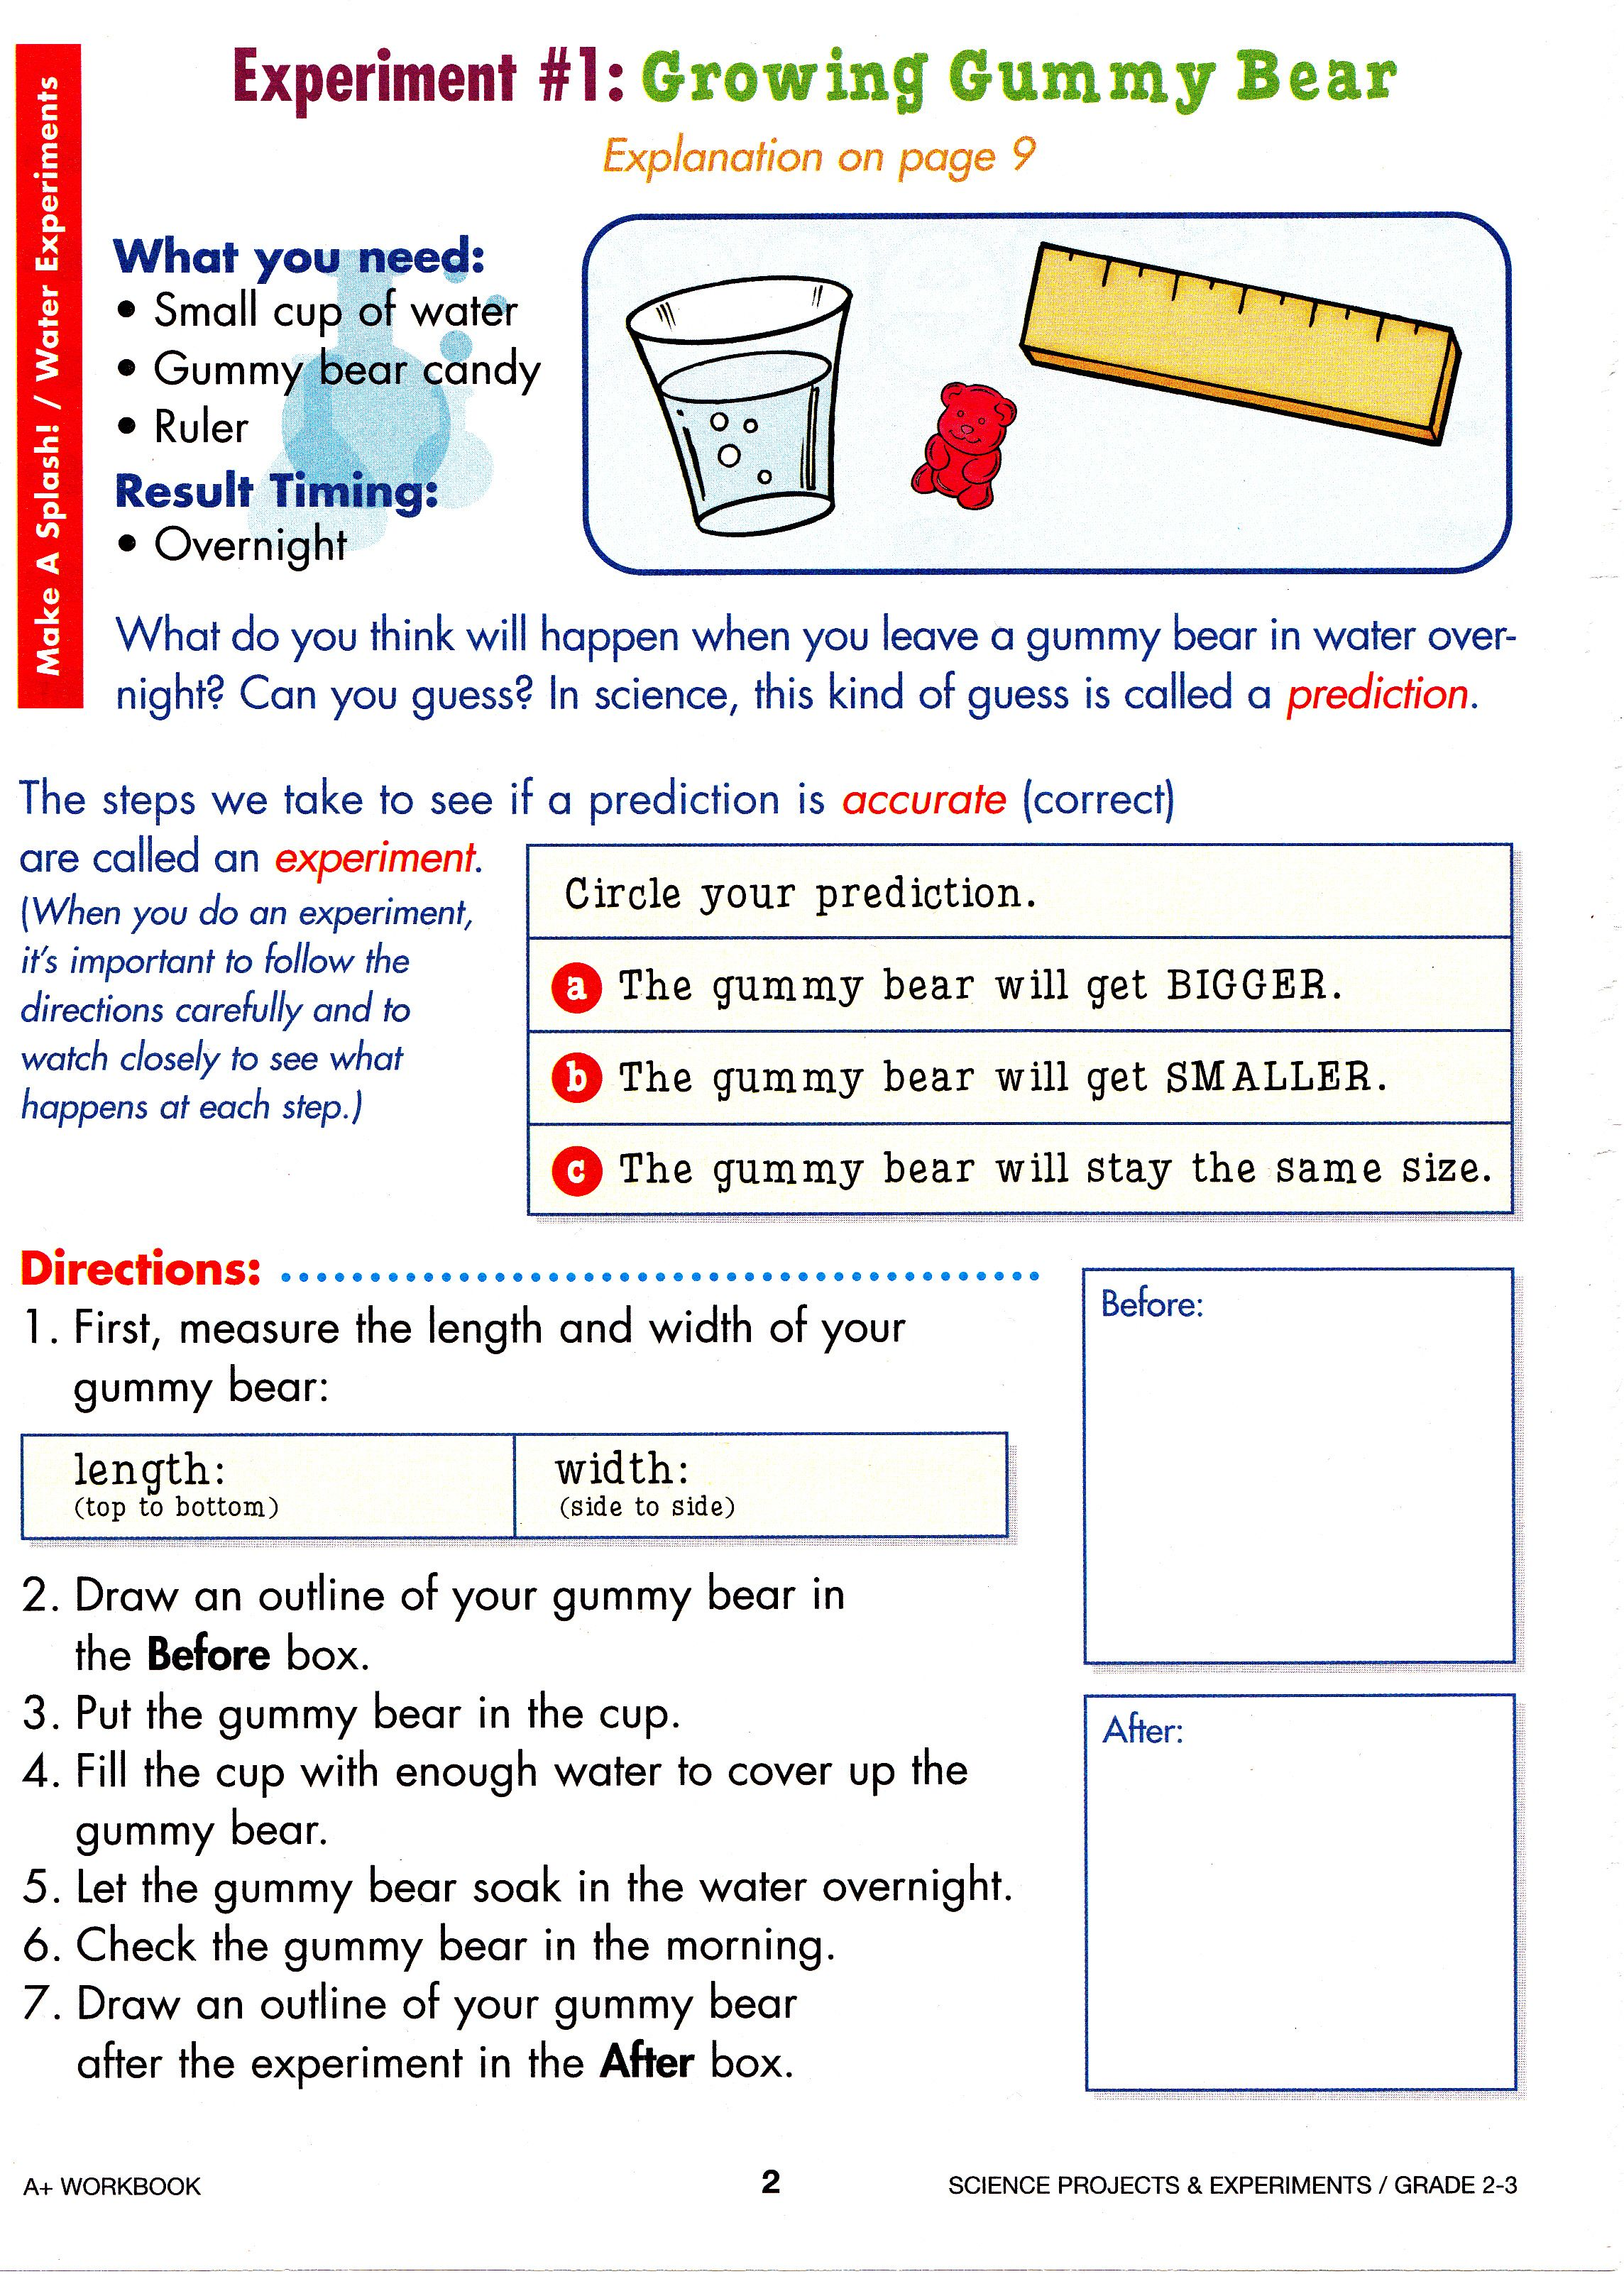 medium resolution of Pin by Sarah Reeder on Let's Talk About Science   Science worksheets